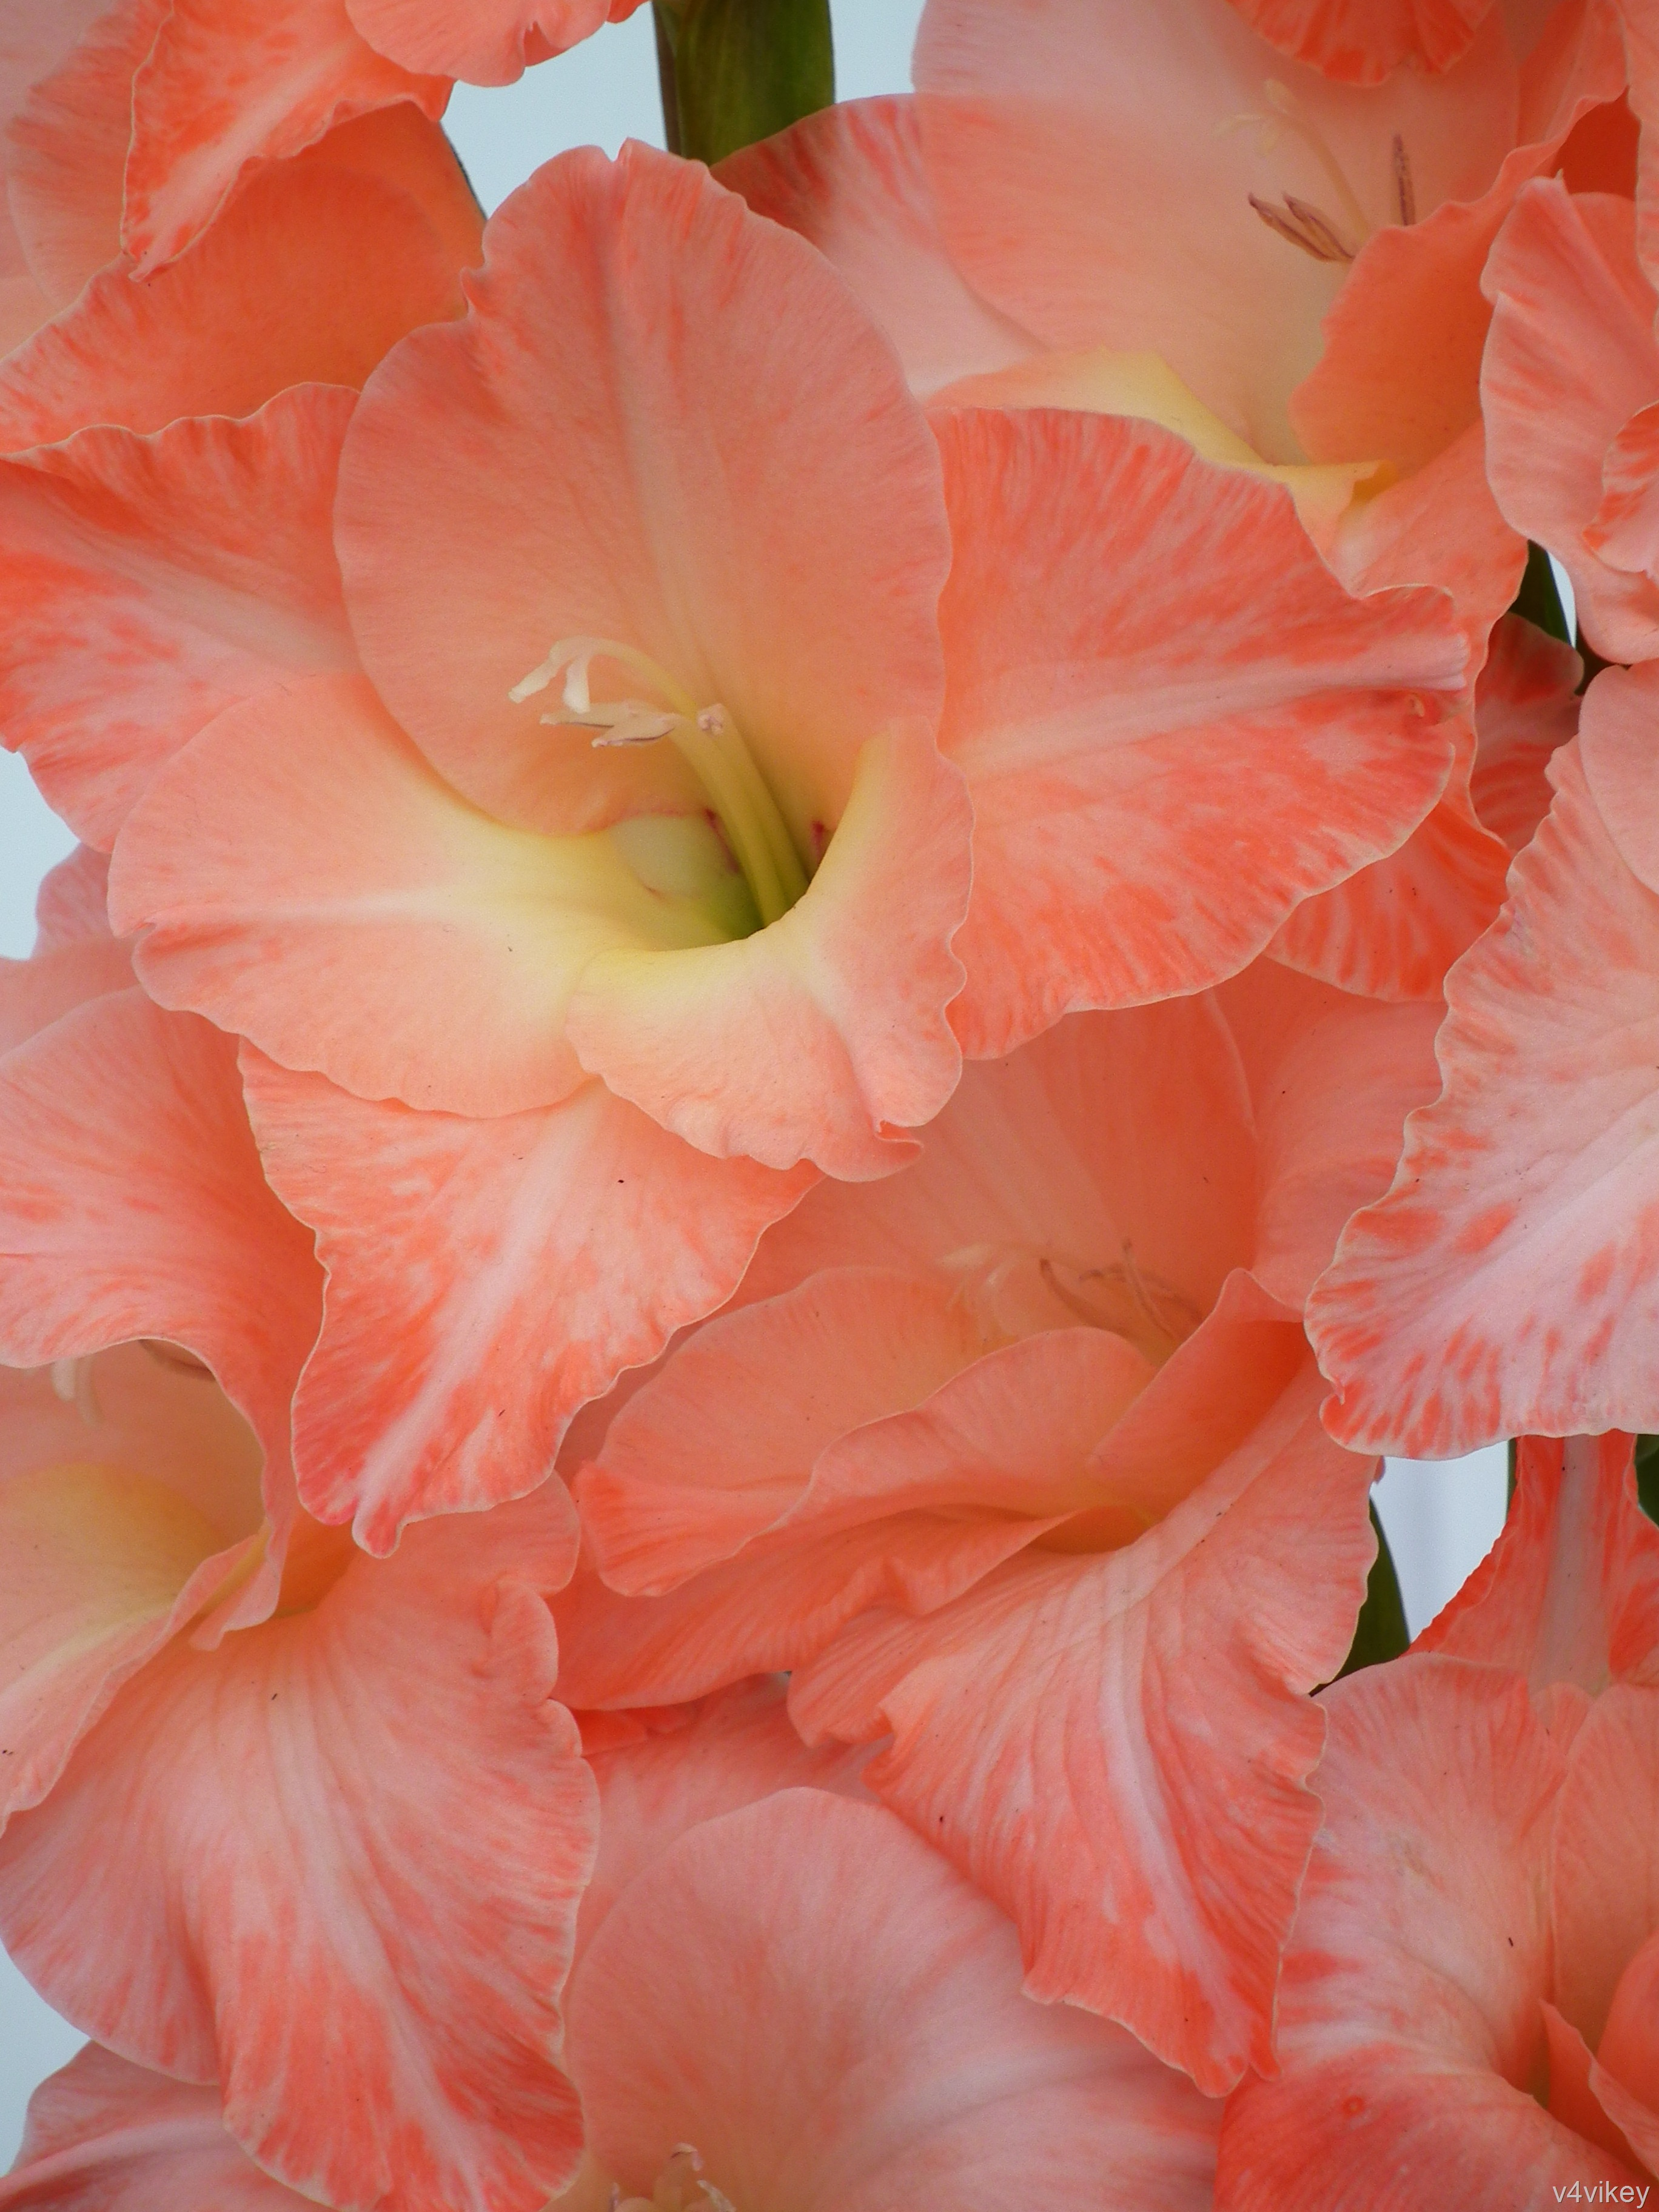 The Gladiolus flower signifies remembrance Wallpaper Tadka